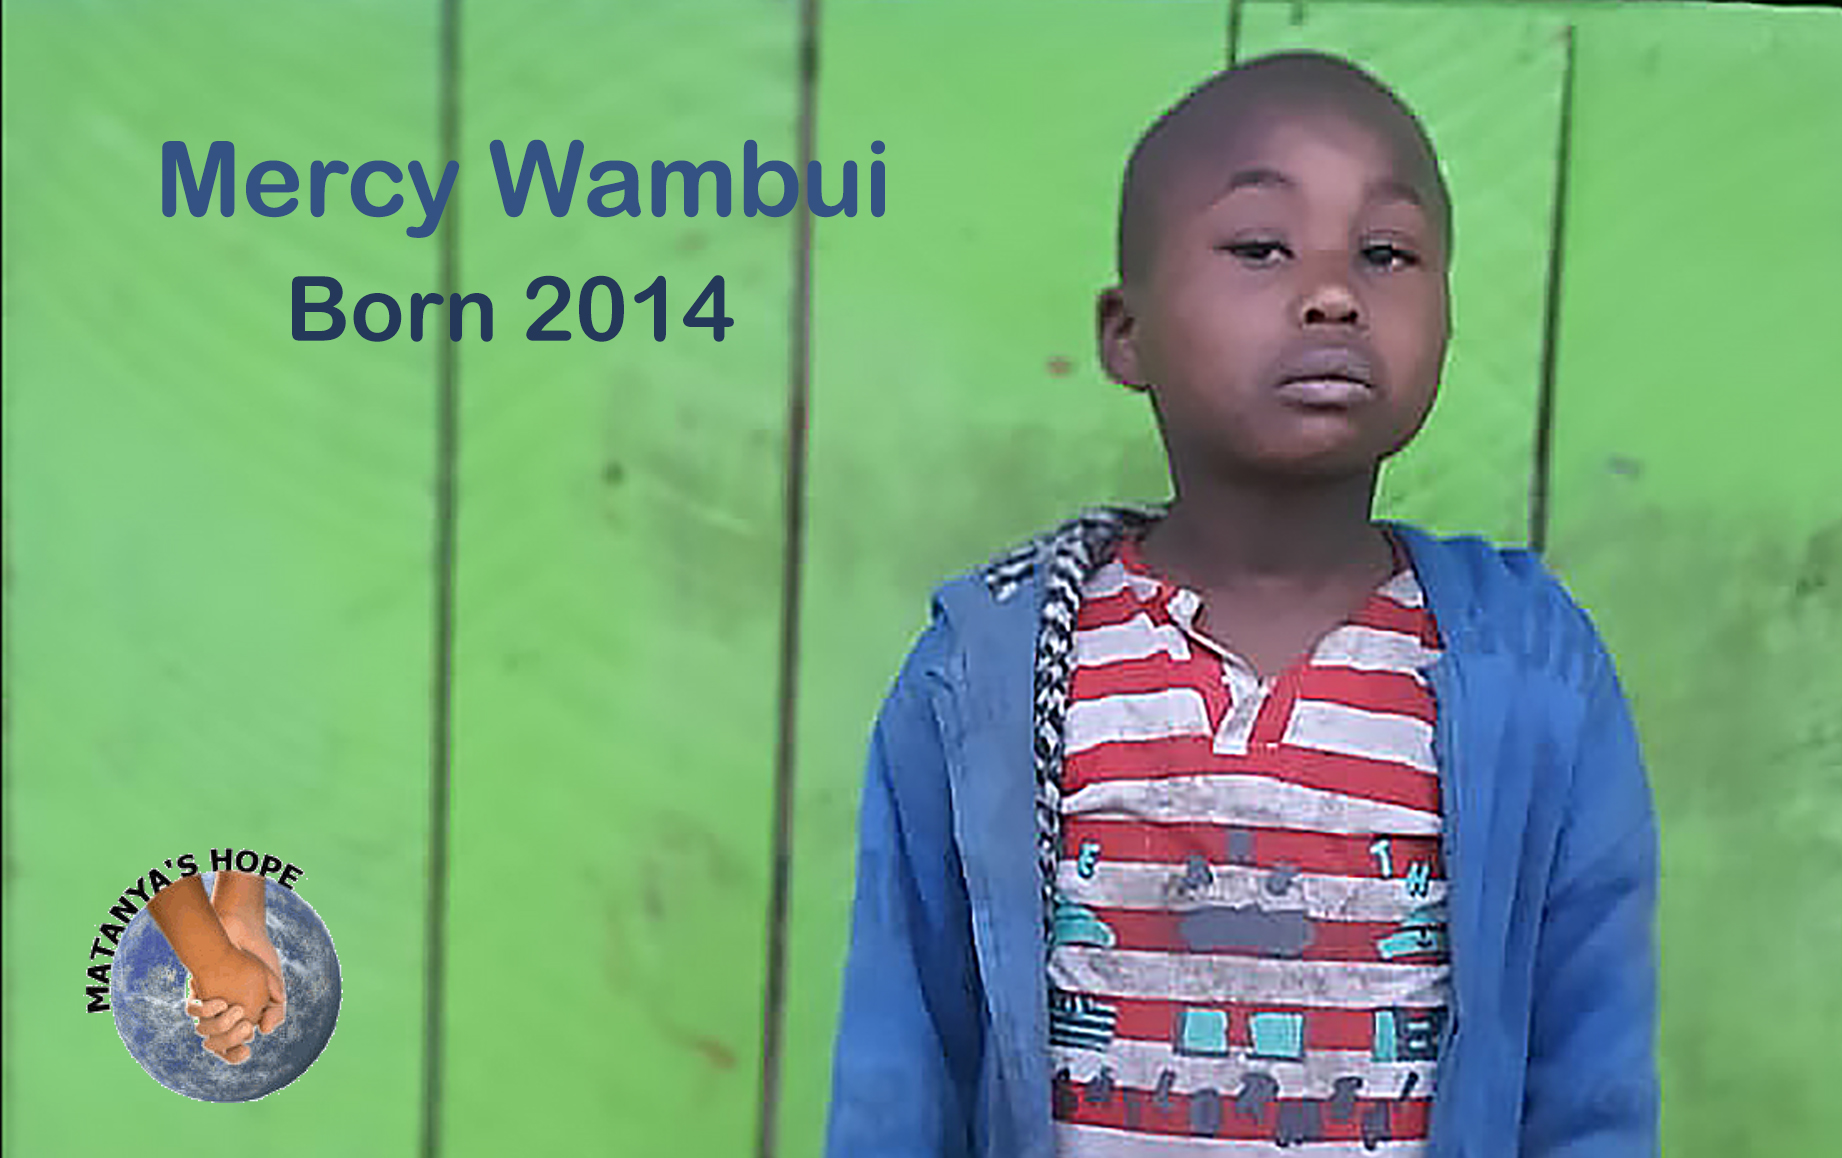 Mercy Wambui was born in 2014, but has only known feeding from the trash for her 6 years of life.   Let's give her the gift of a miracle; let's send her to school.